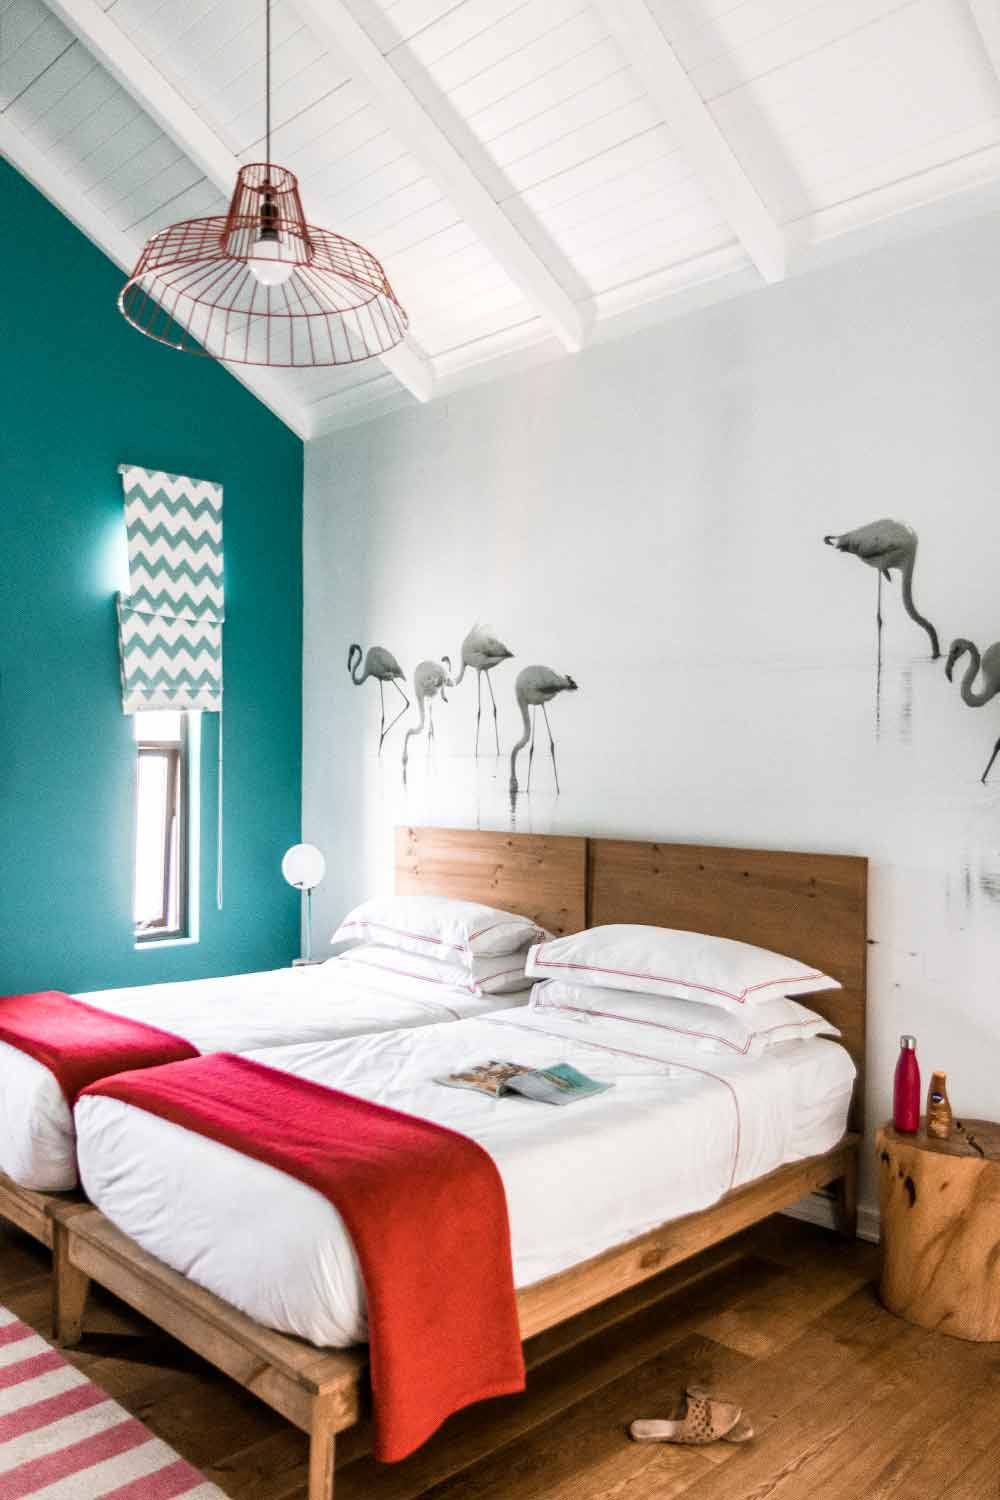 Colorful rooms at The Delight Swakopmund, one of the best places to stay in Swakopmund